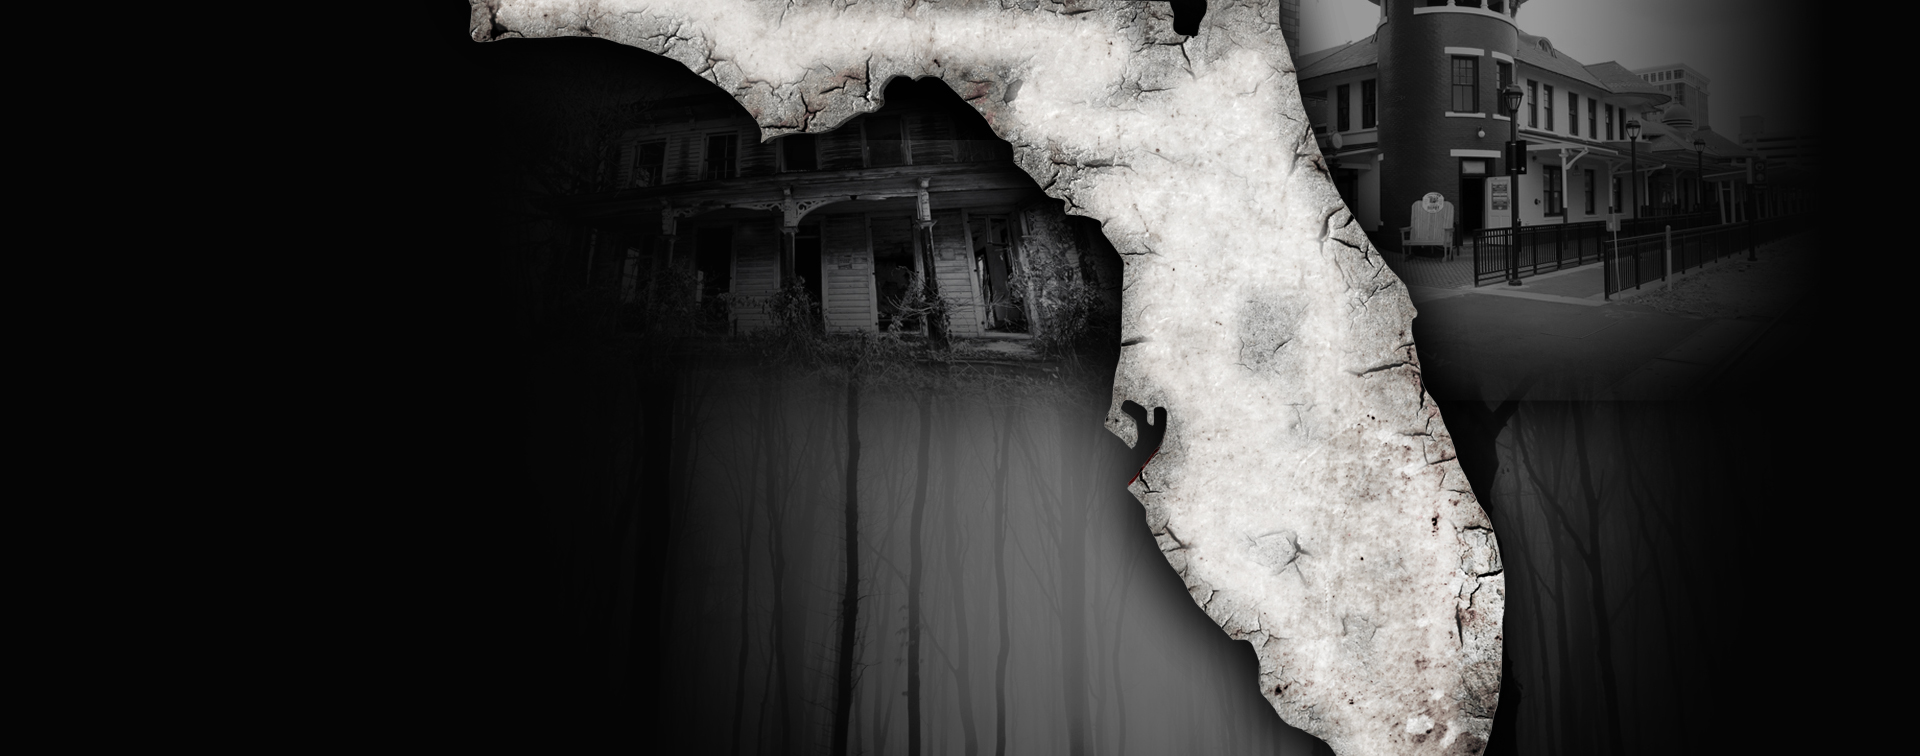 6 Central Florida Haunts to Visit This Halloween